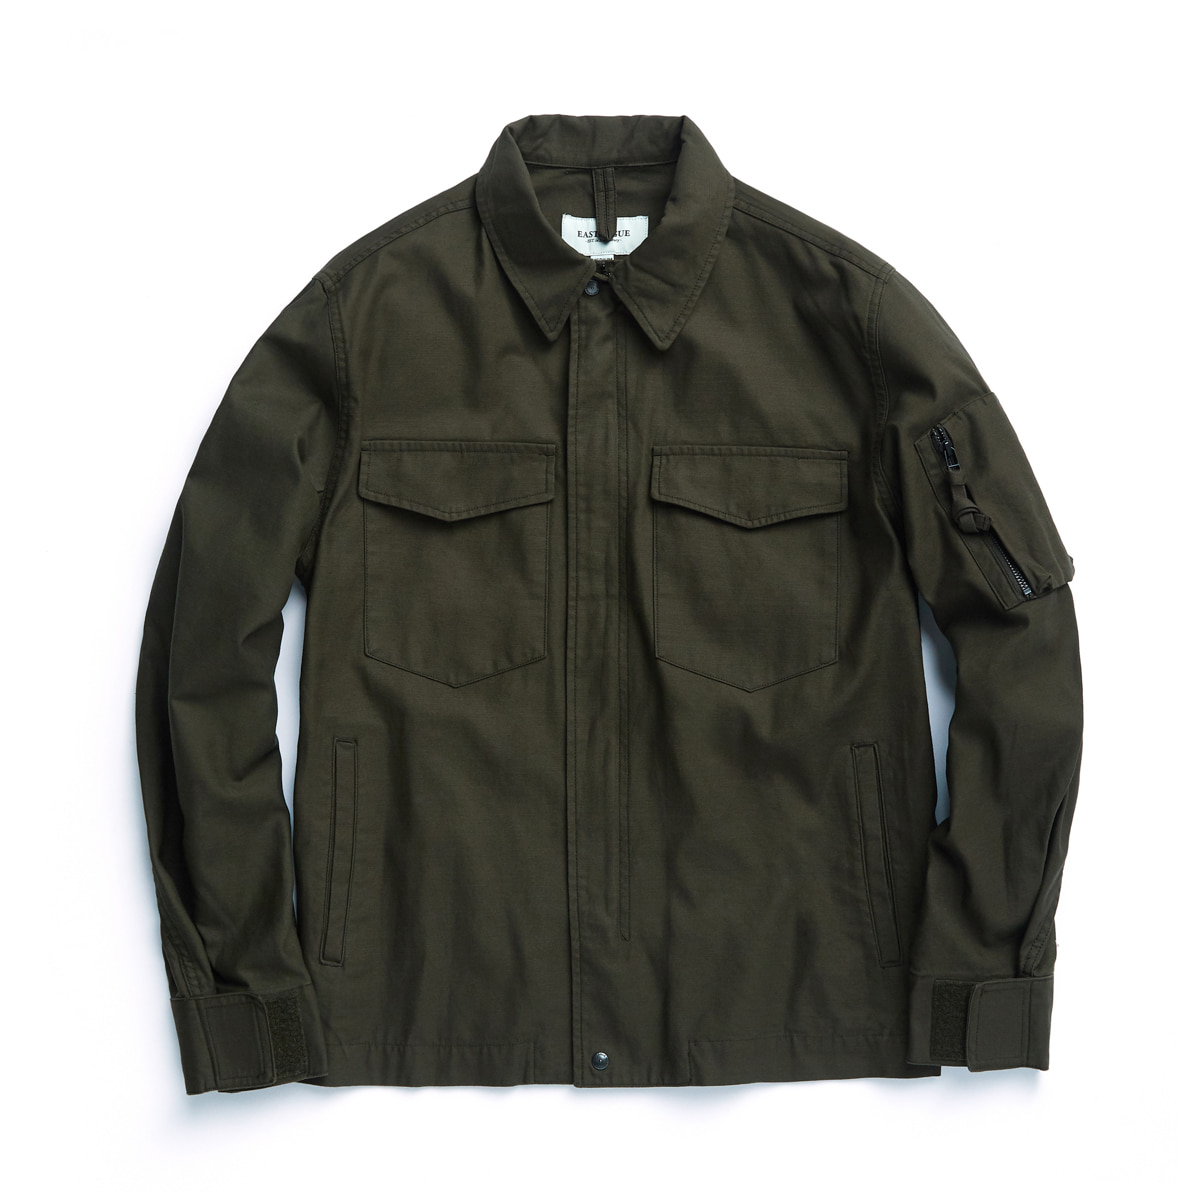 [EASTLOGUE] OG 106 JACKET 'OLIVE BACKSATIN'